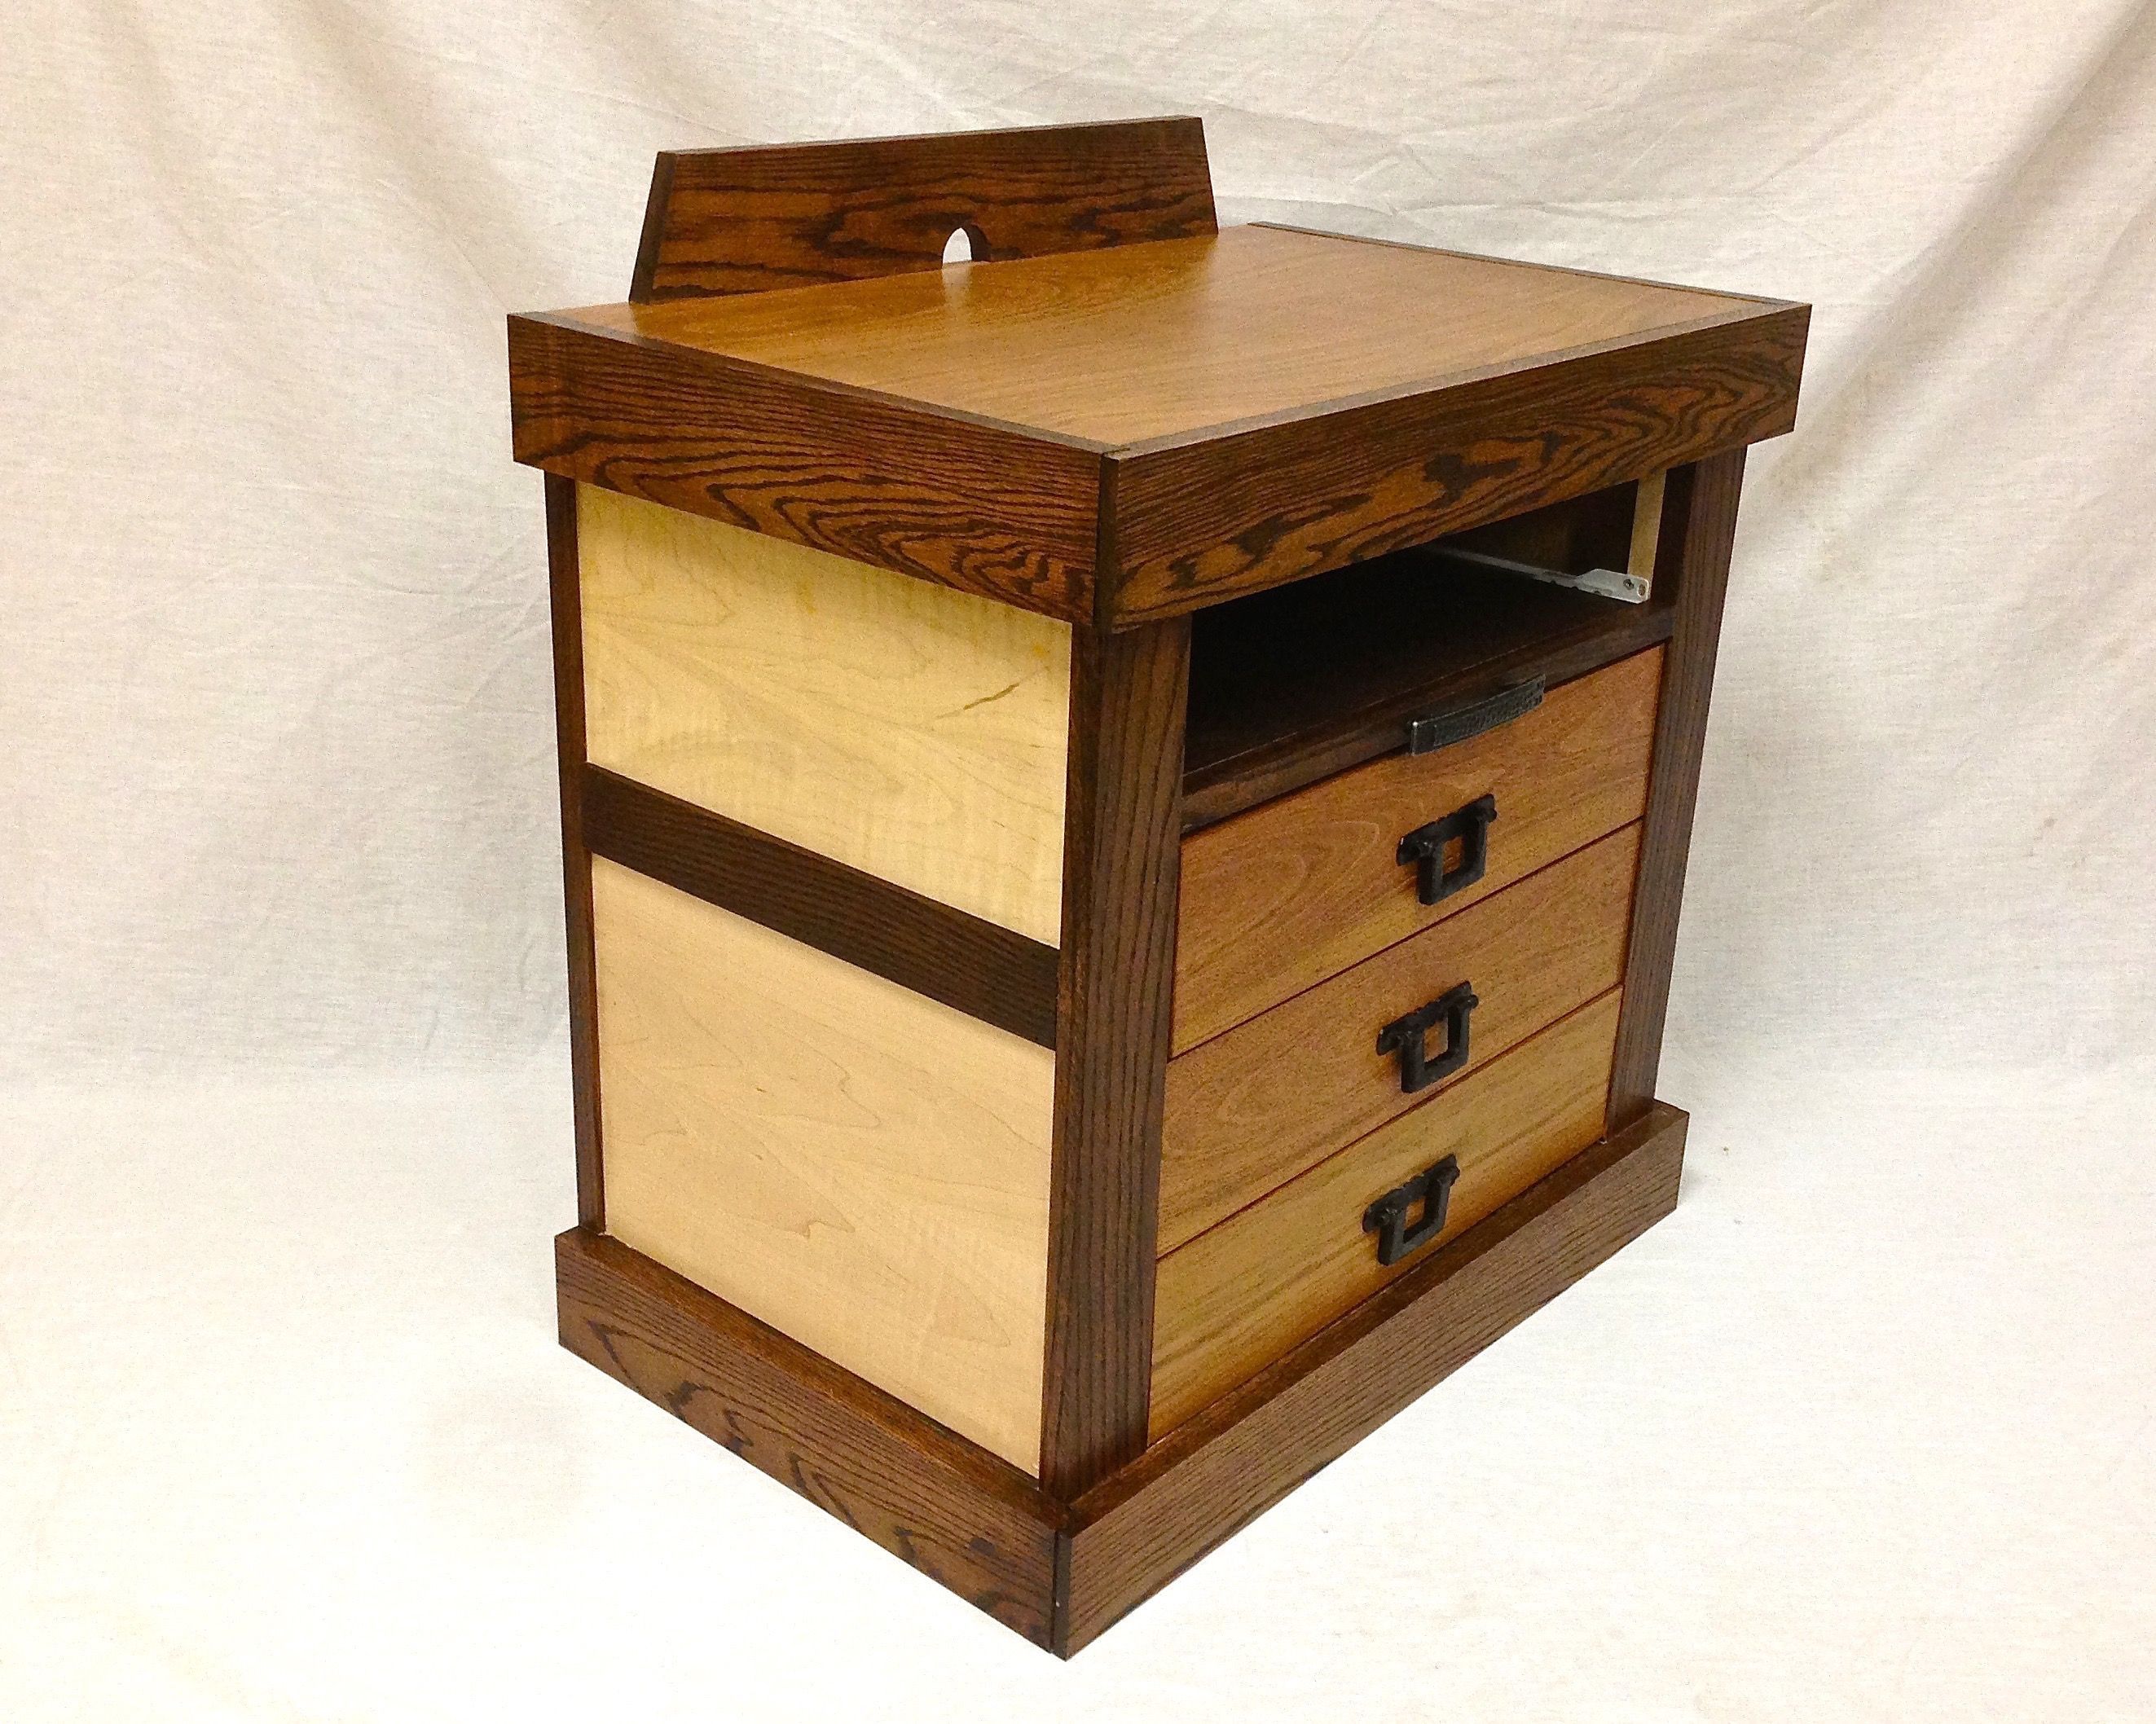 Hand Made Brazilian Cherry And Curly Maple Nightstands By S